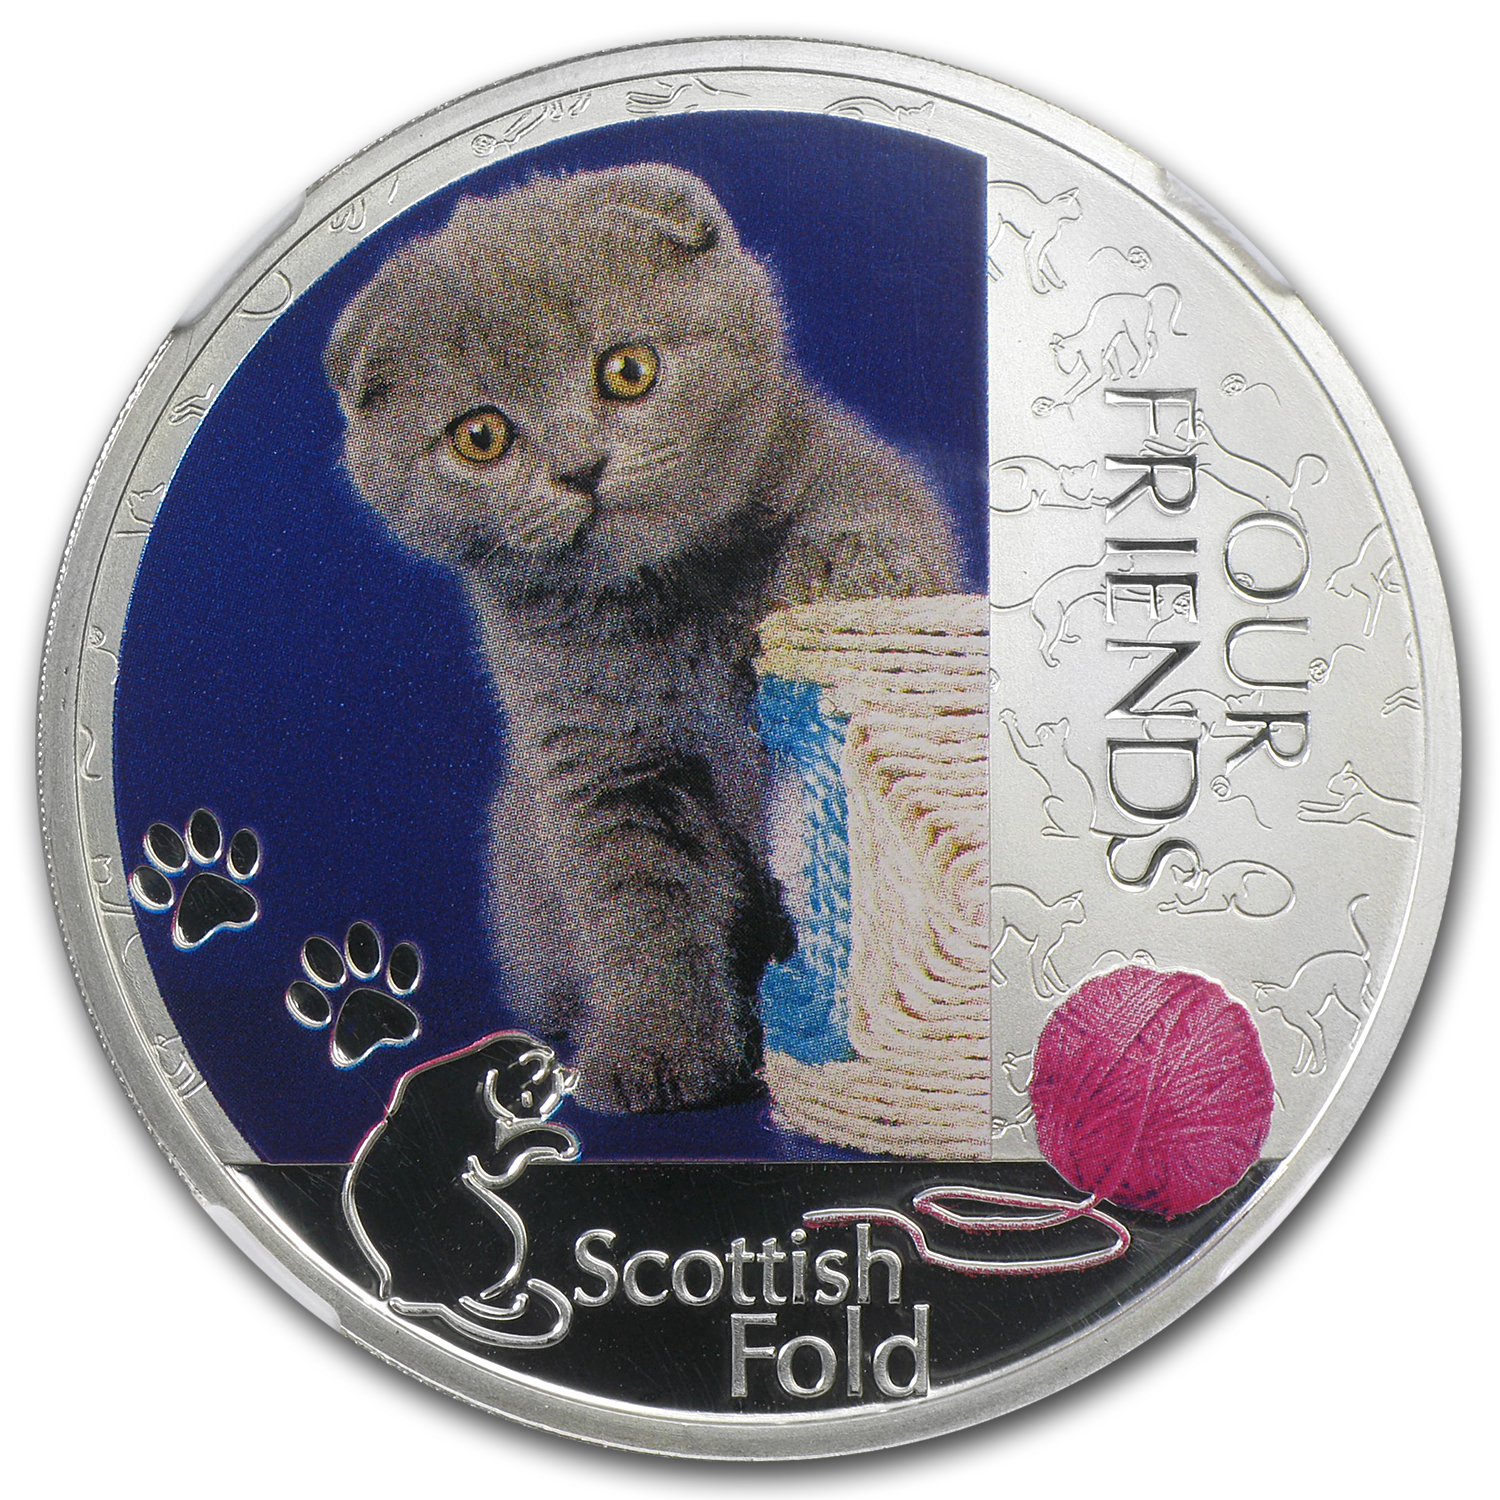 2012 Niue 1 oz Silver Kitten Collection Scottish Fold PF-69 NGC